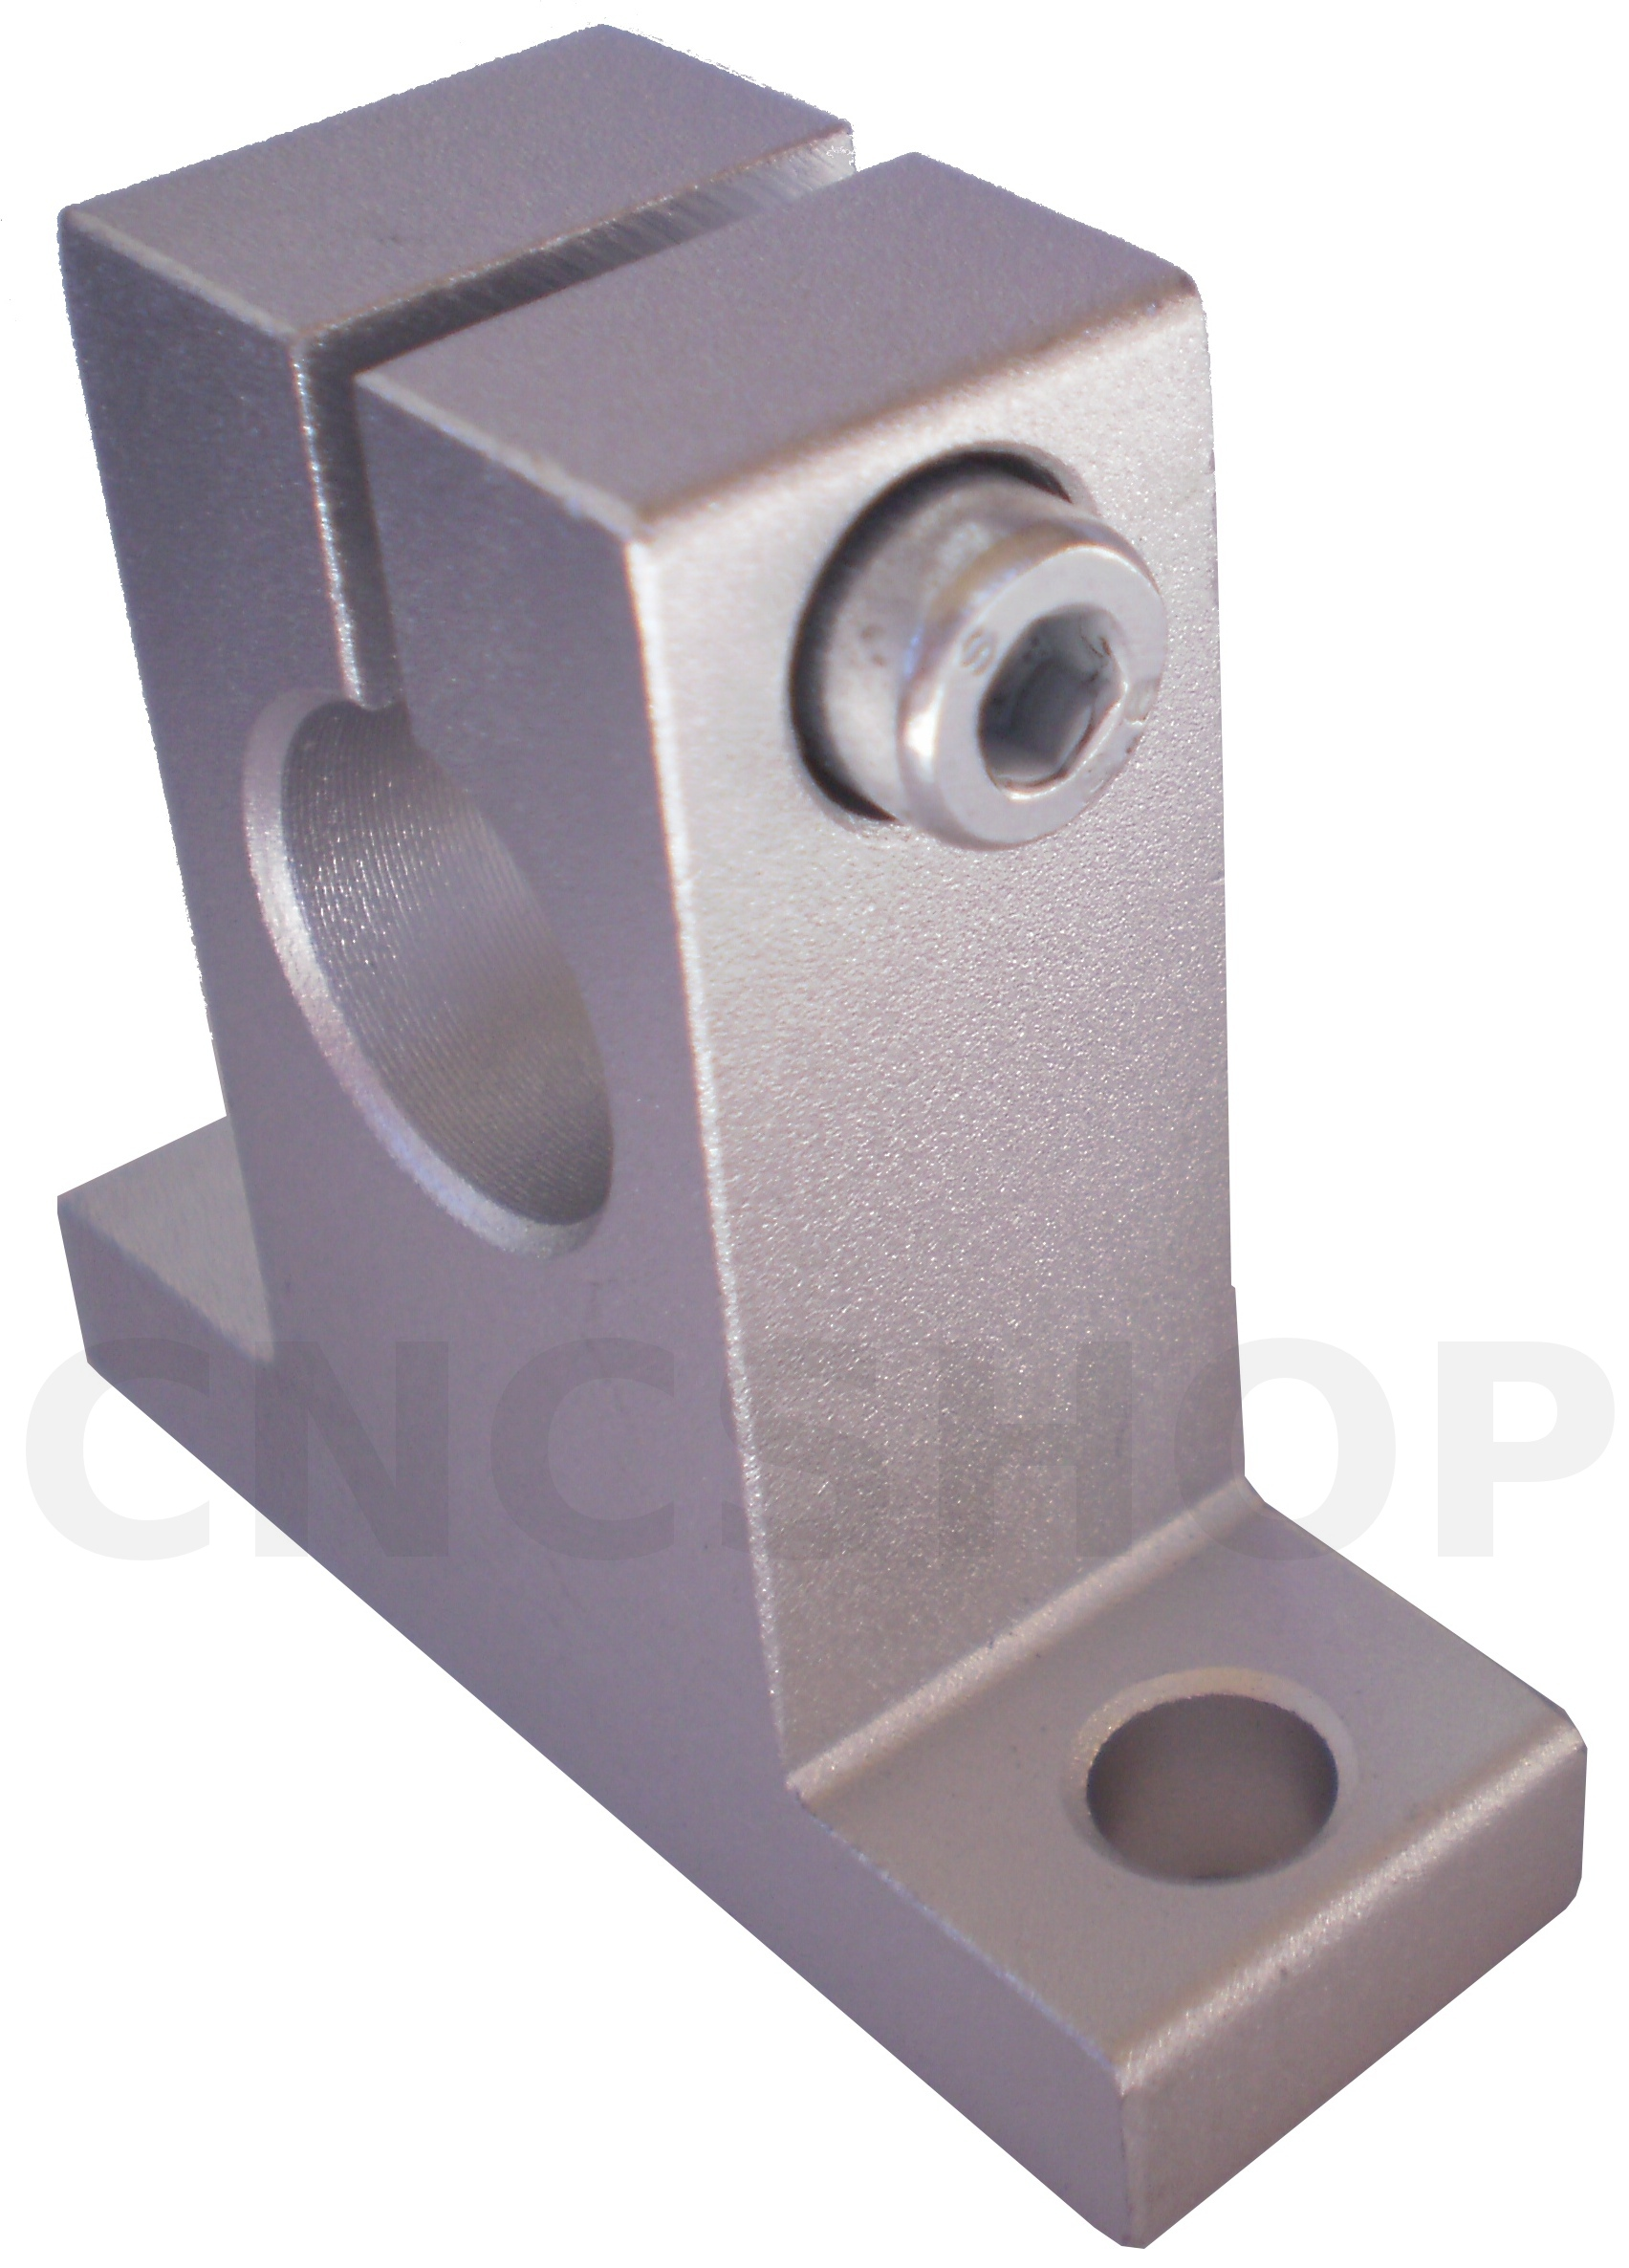 SK12 12mm STANDARD BOTTOM MOUNT SHAFT SUPPORT - Click Image to Close